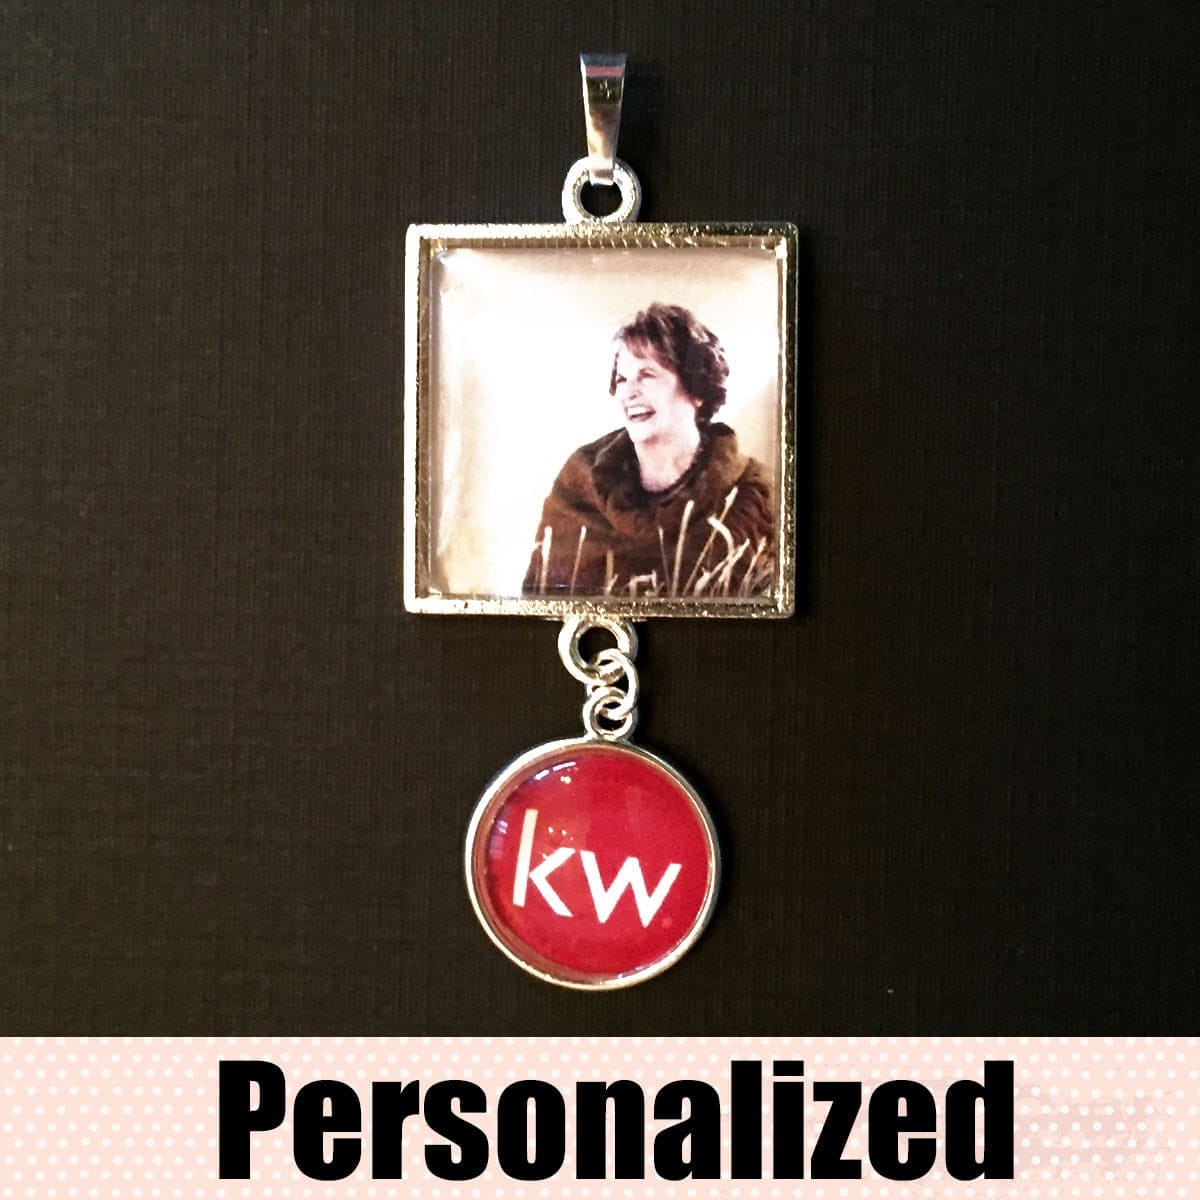 Personalized Charm Pendant - Corporate Gifts